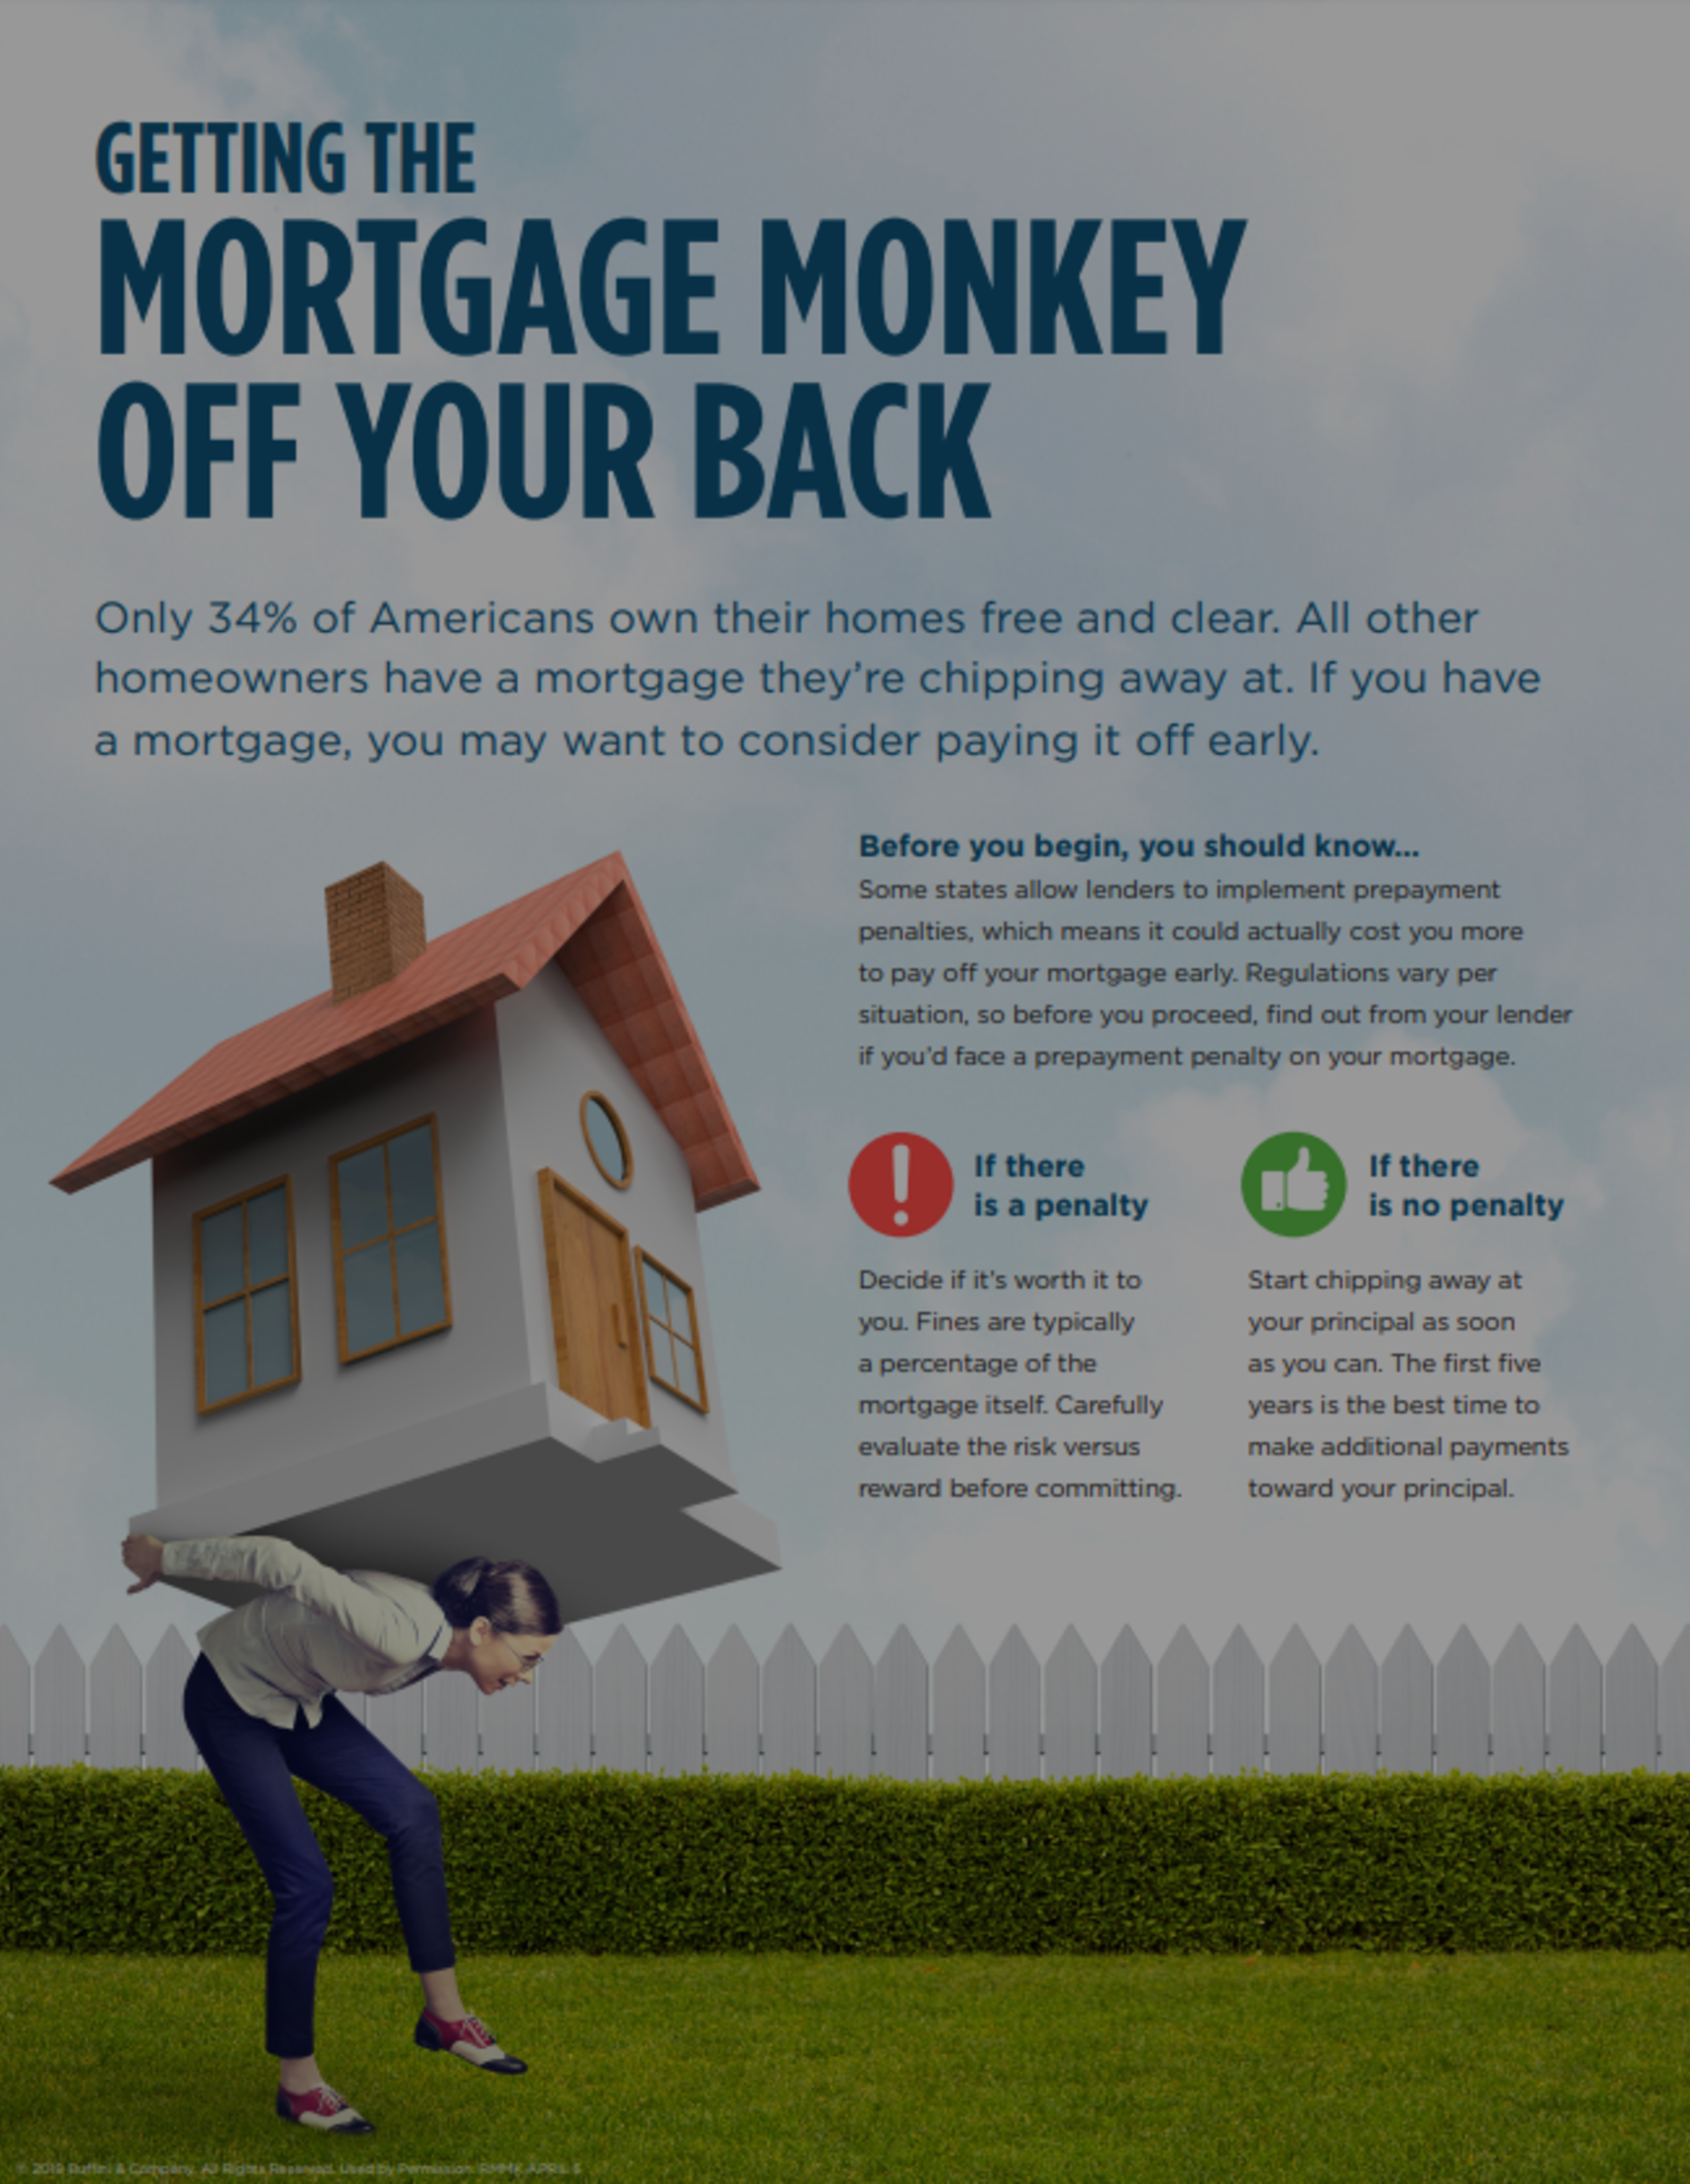 Getting The Mortgage Monkey Off Your Back